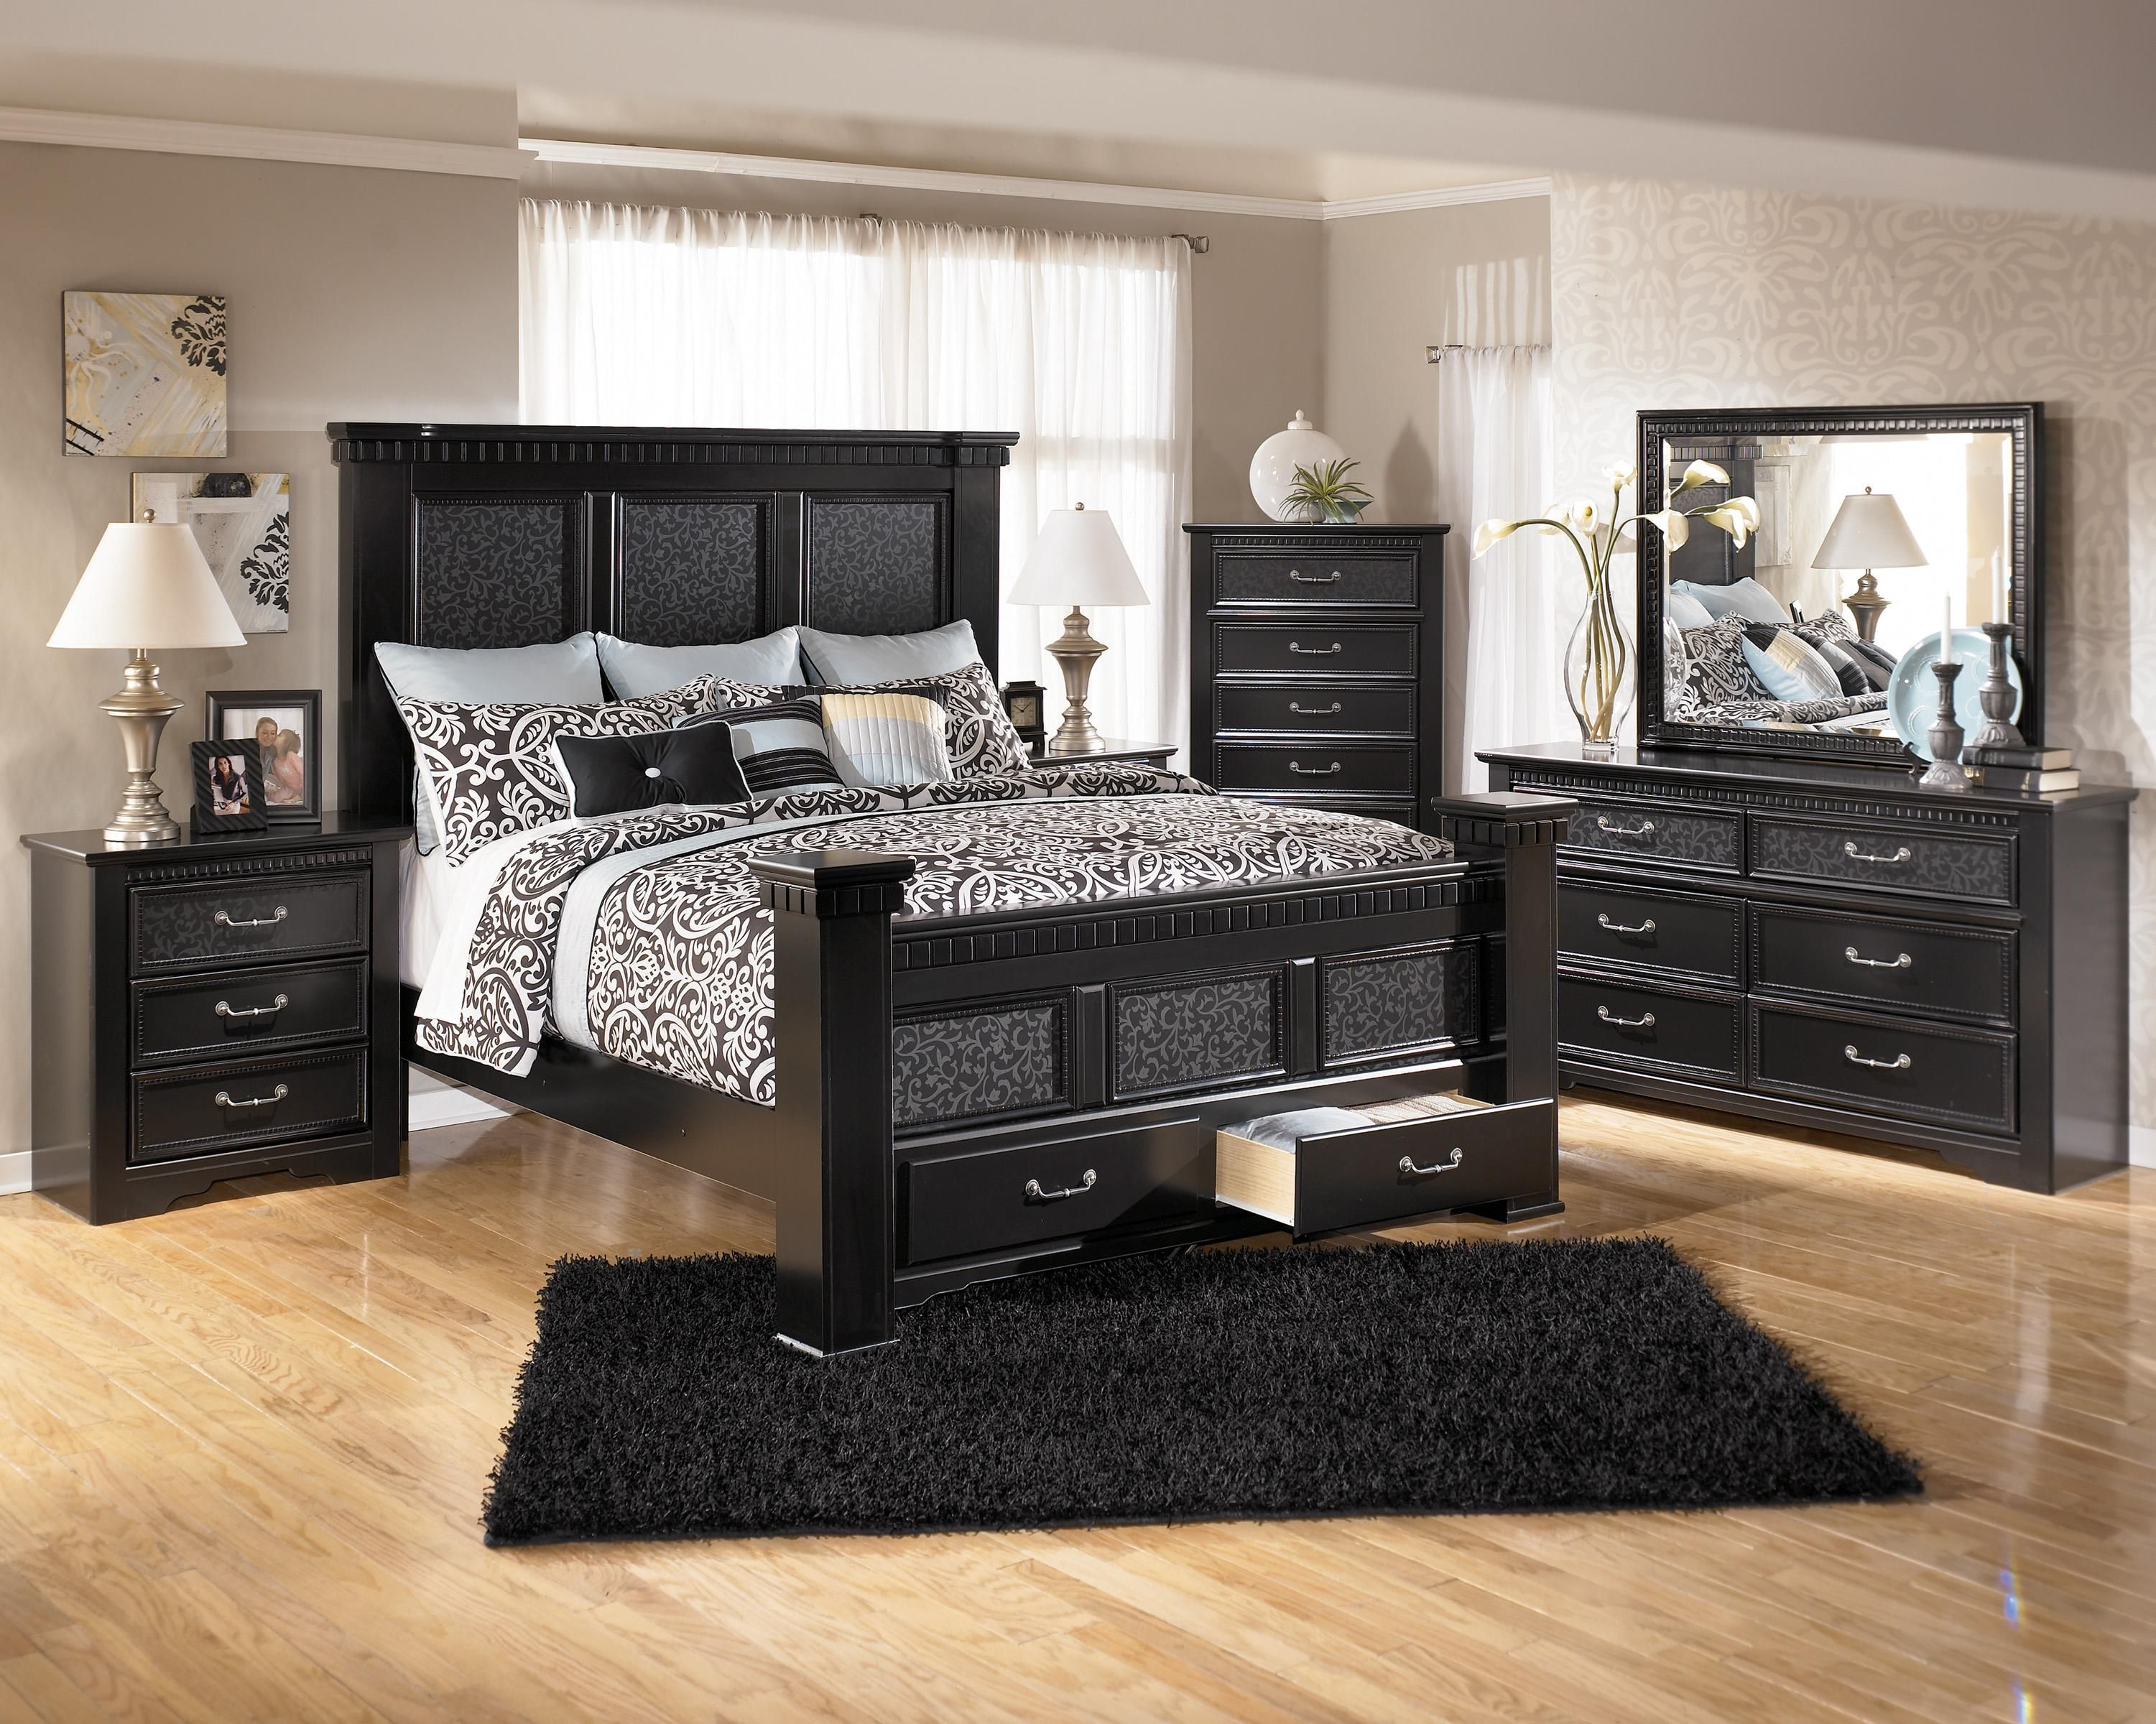 Ashley Furniture Cavallino Bedroom Set with Mansion Poster ...